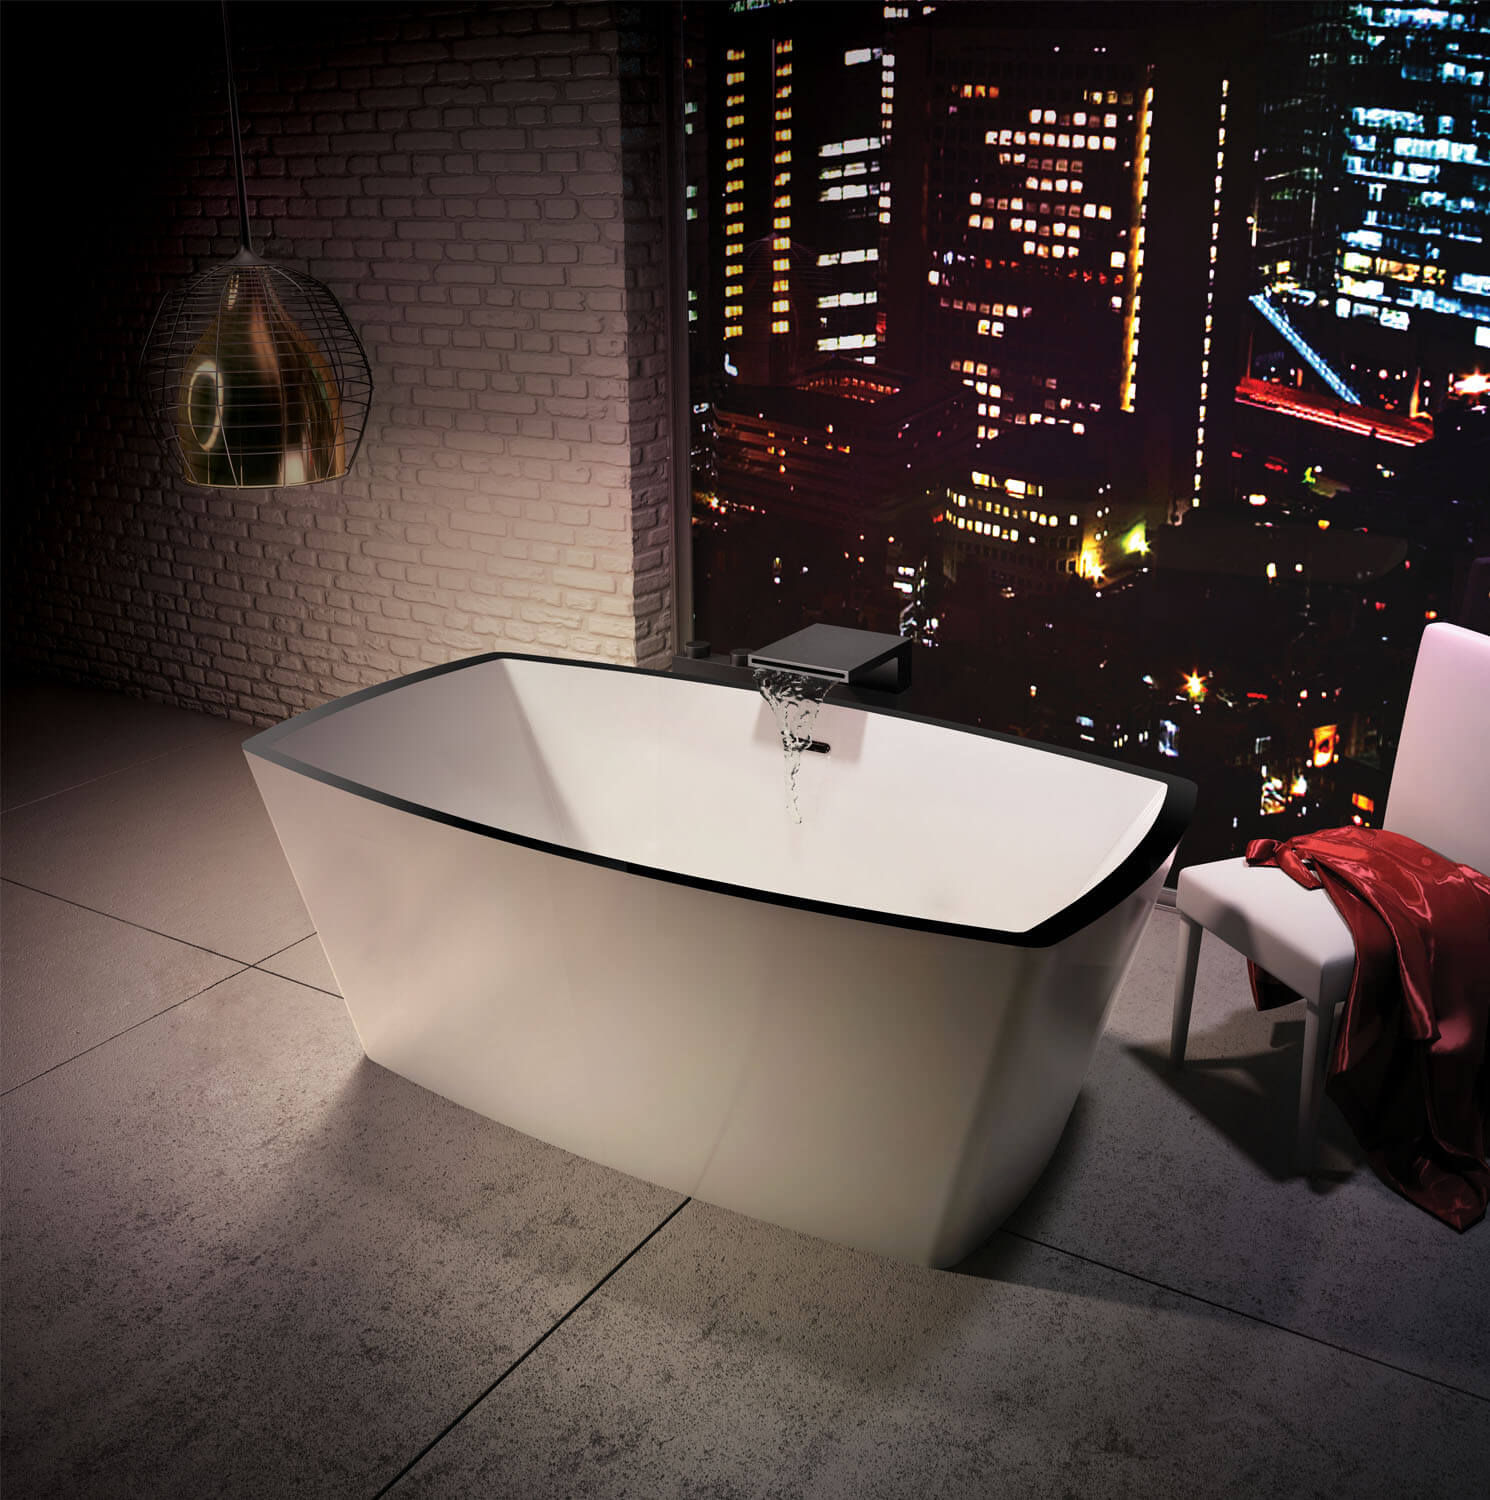 Bainultra Charism 6434 two person freestanding air jet bathtub for your master bathroo